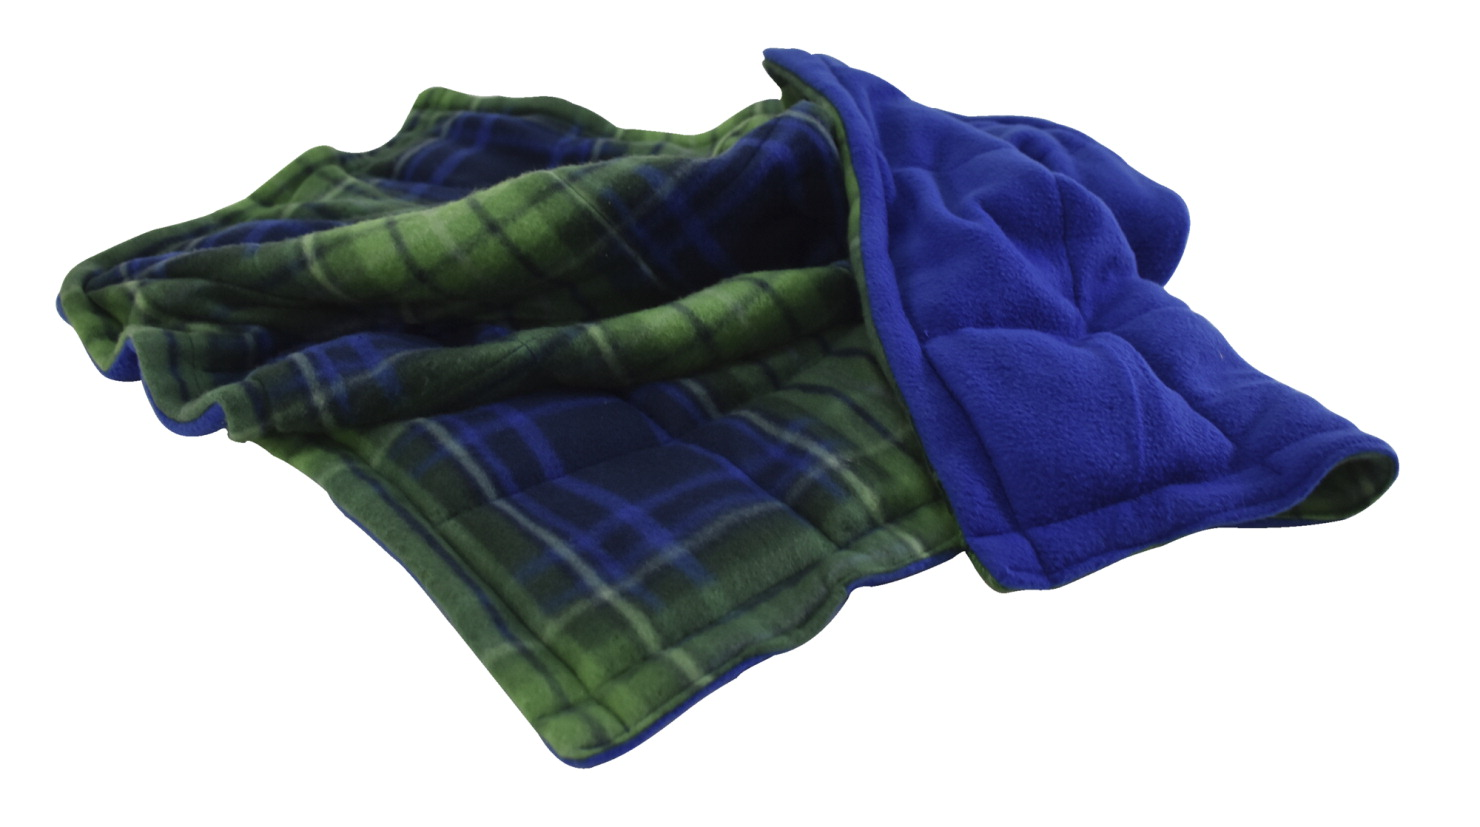 Abilitations Weighted Blanket, Medium, 8 Pounds, Plaid